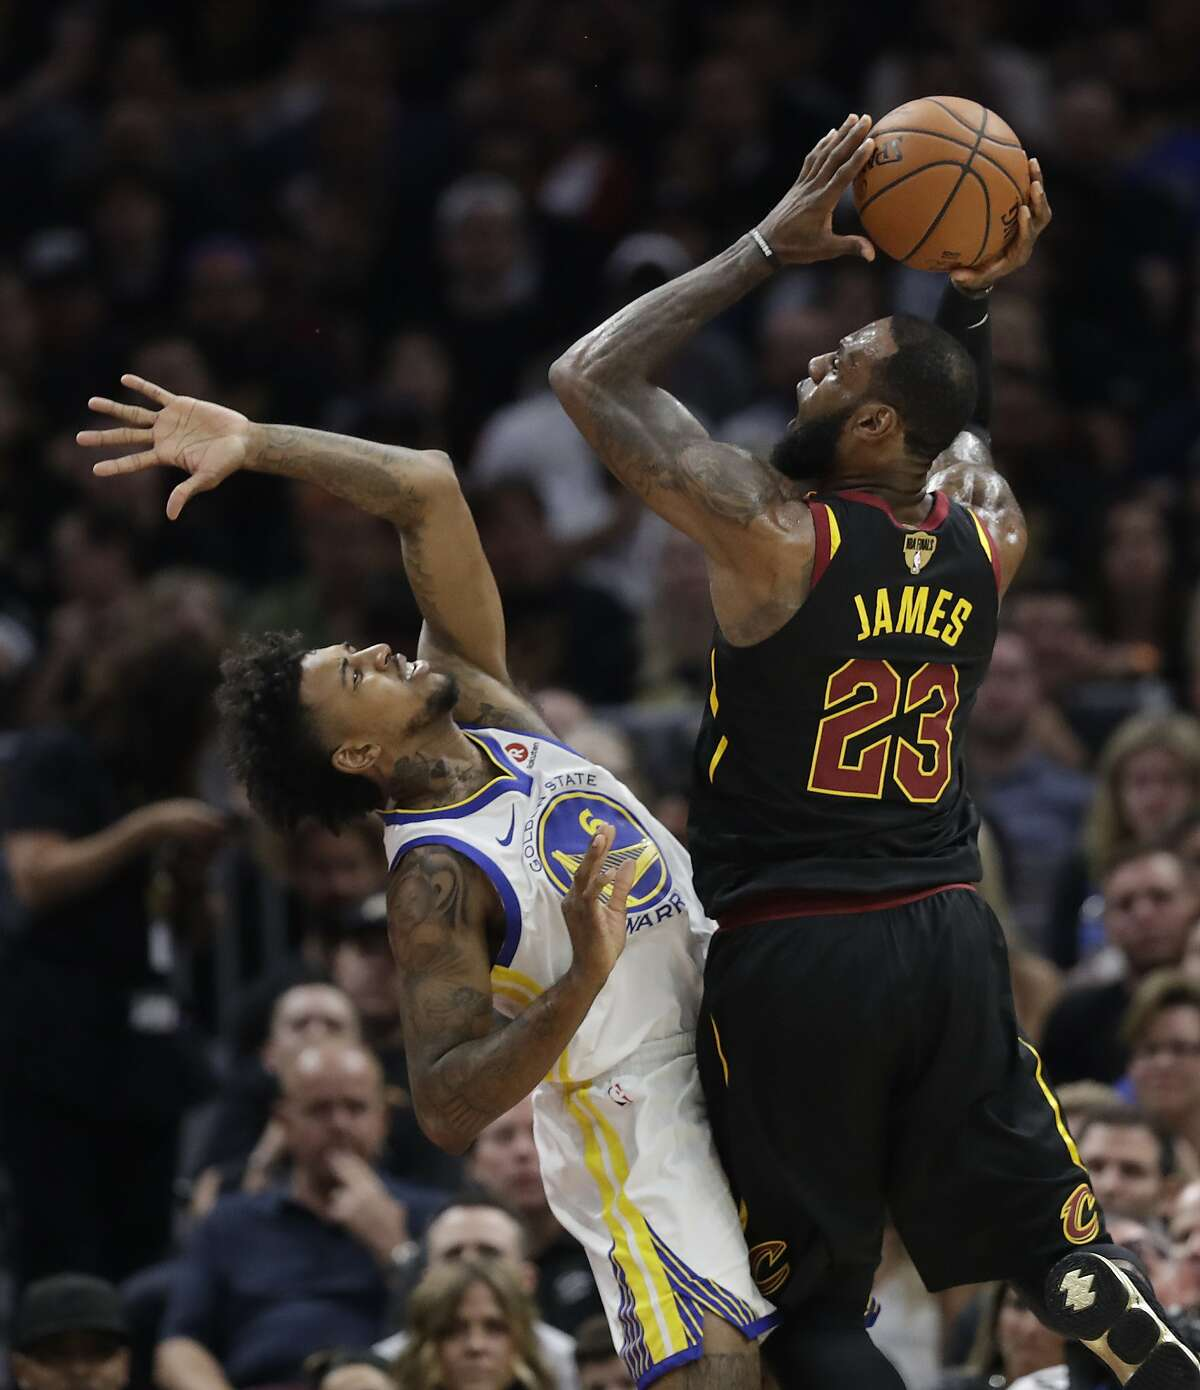 Cleveland Cavaliers' LeBron James shoots over Golden State Warriors' Nick Young during the first half of Game 4 of basketball's NBA Finals, Friday, June 8, 2018, in Cleveland. (AP Photo/Tony Dejak)